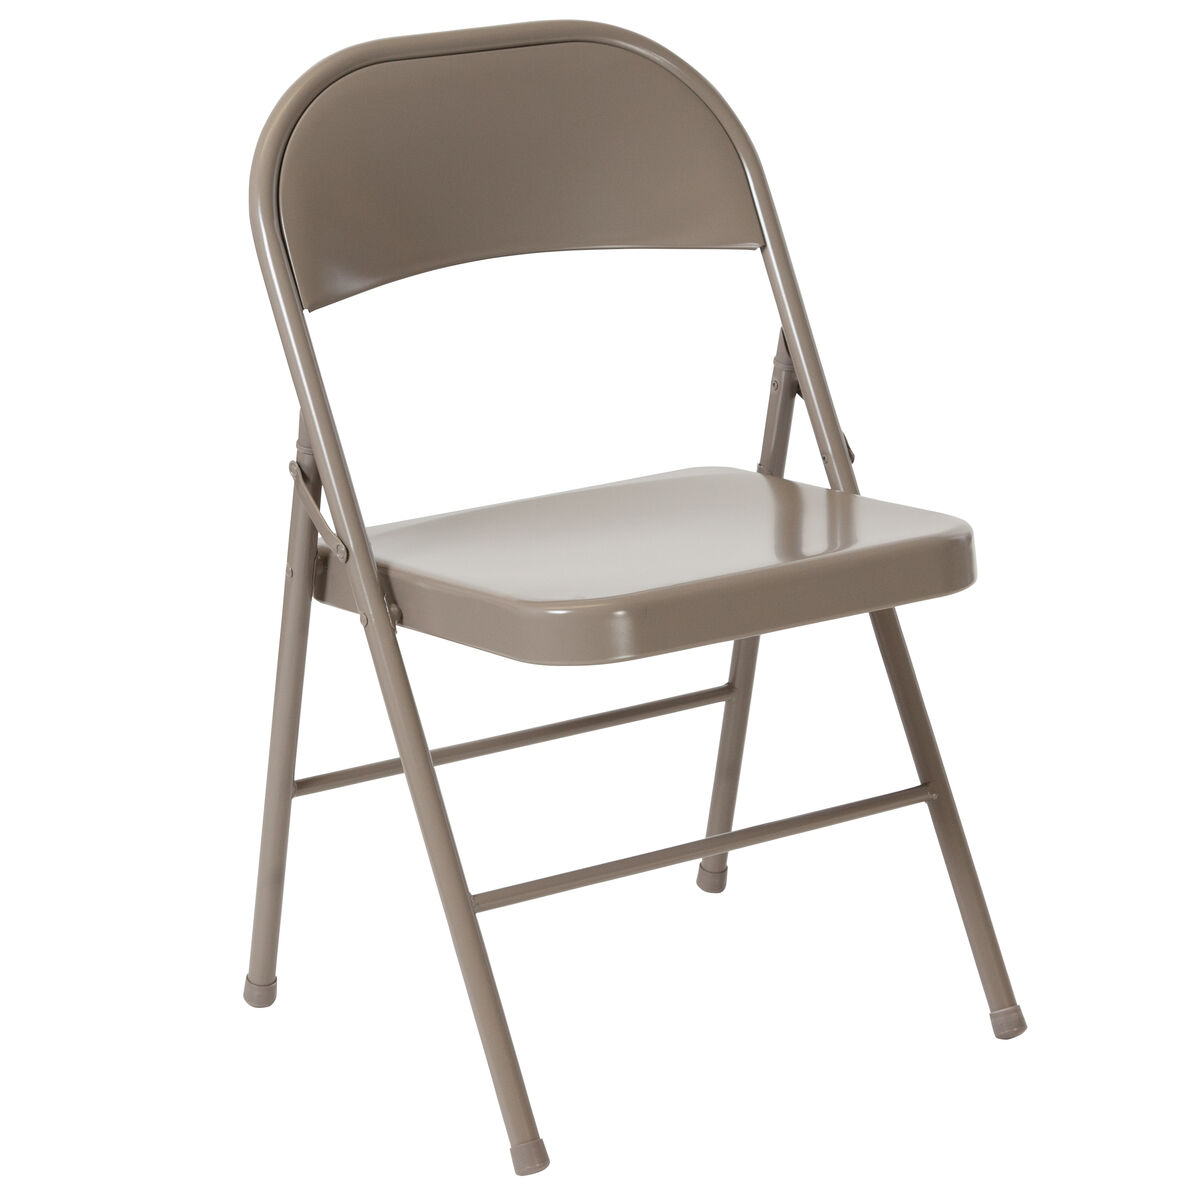 Miraculous Hercules Series Double Braced Gray Metal Folding Chair Caraccident5 Cool Chair Designs And Ideas Caraccident5Info